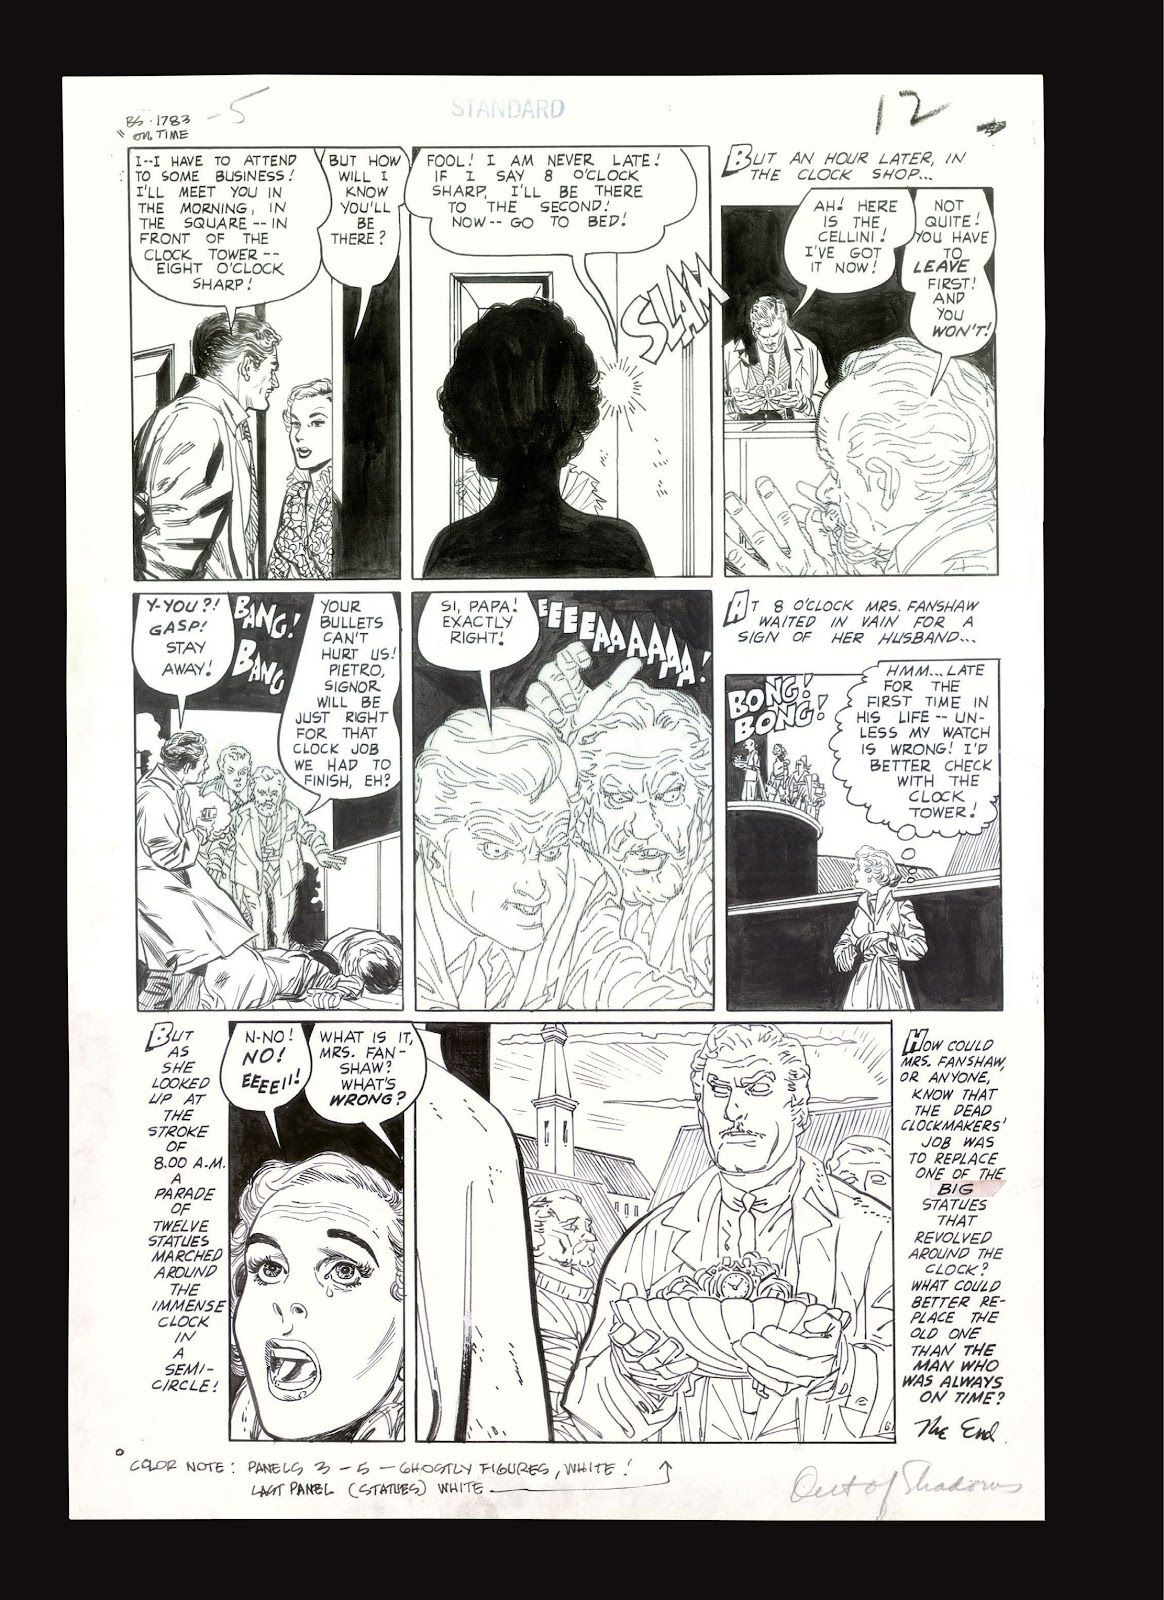 Read online Setting the Standard: Comics by Alex Toth 1952-1954 comic -  Issue # TPB (Part 4) - 133